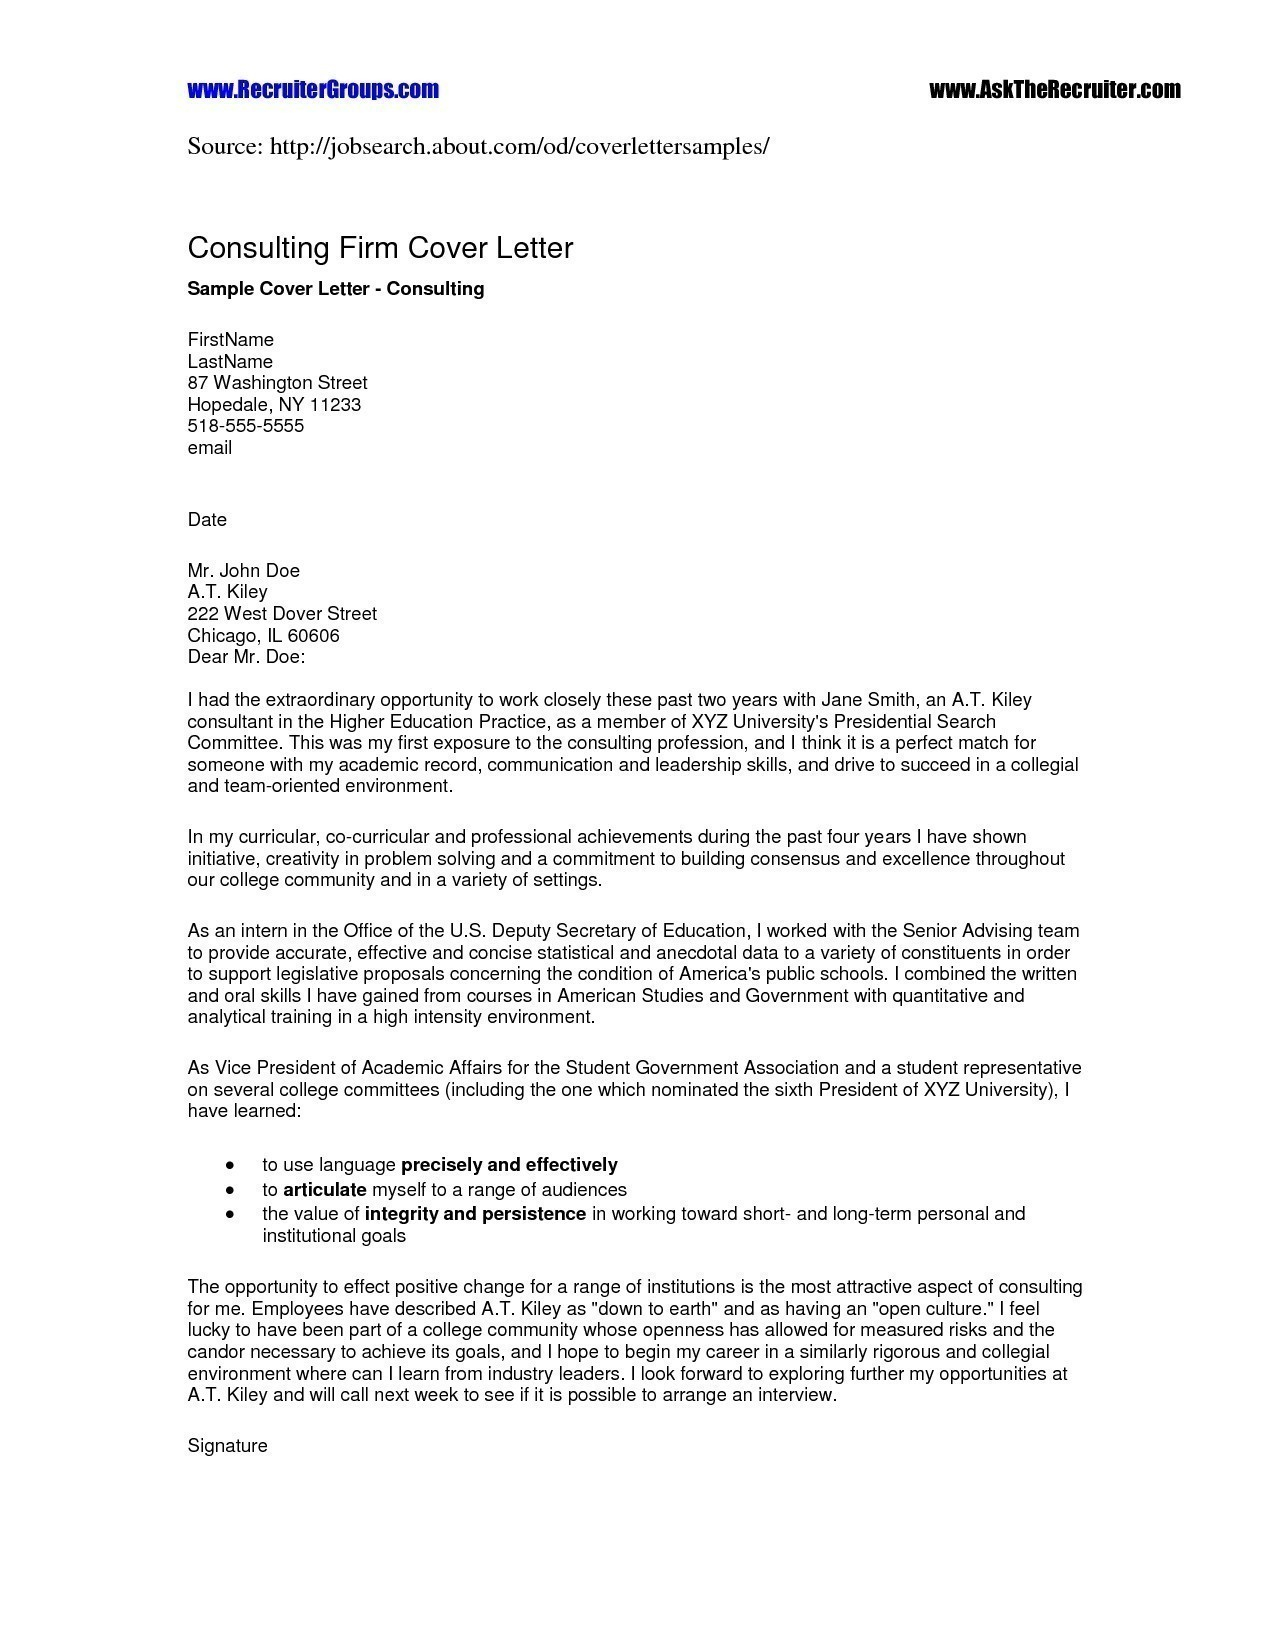 Employment Job Offer Letter Template - How to Write Job Fer Letter Fresh Job Fer Letter Sample Best Job